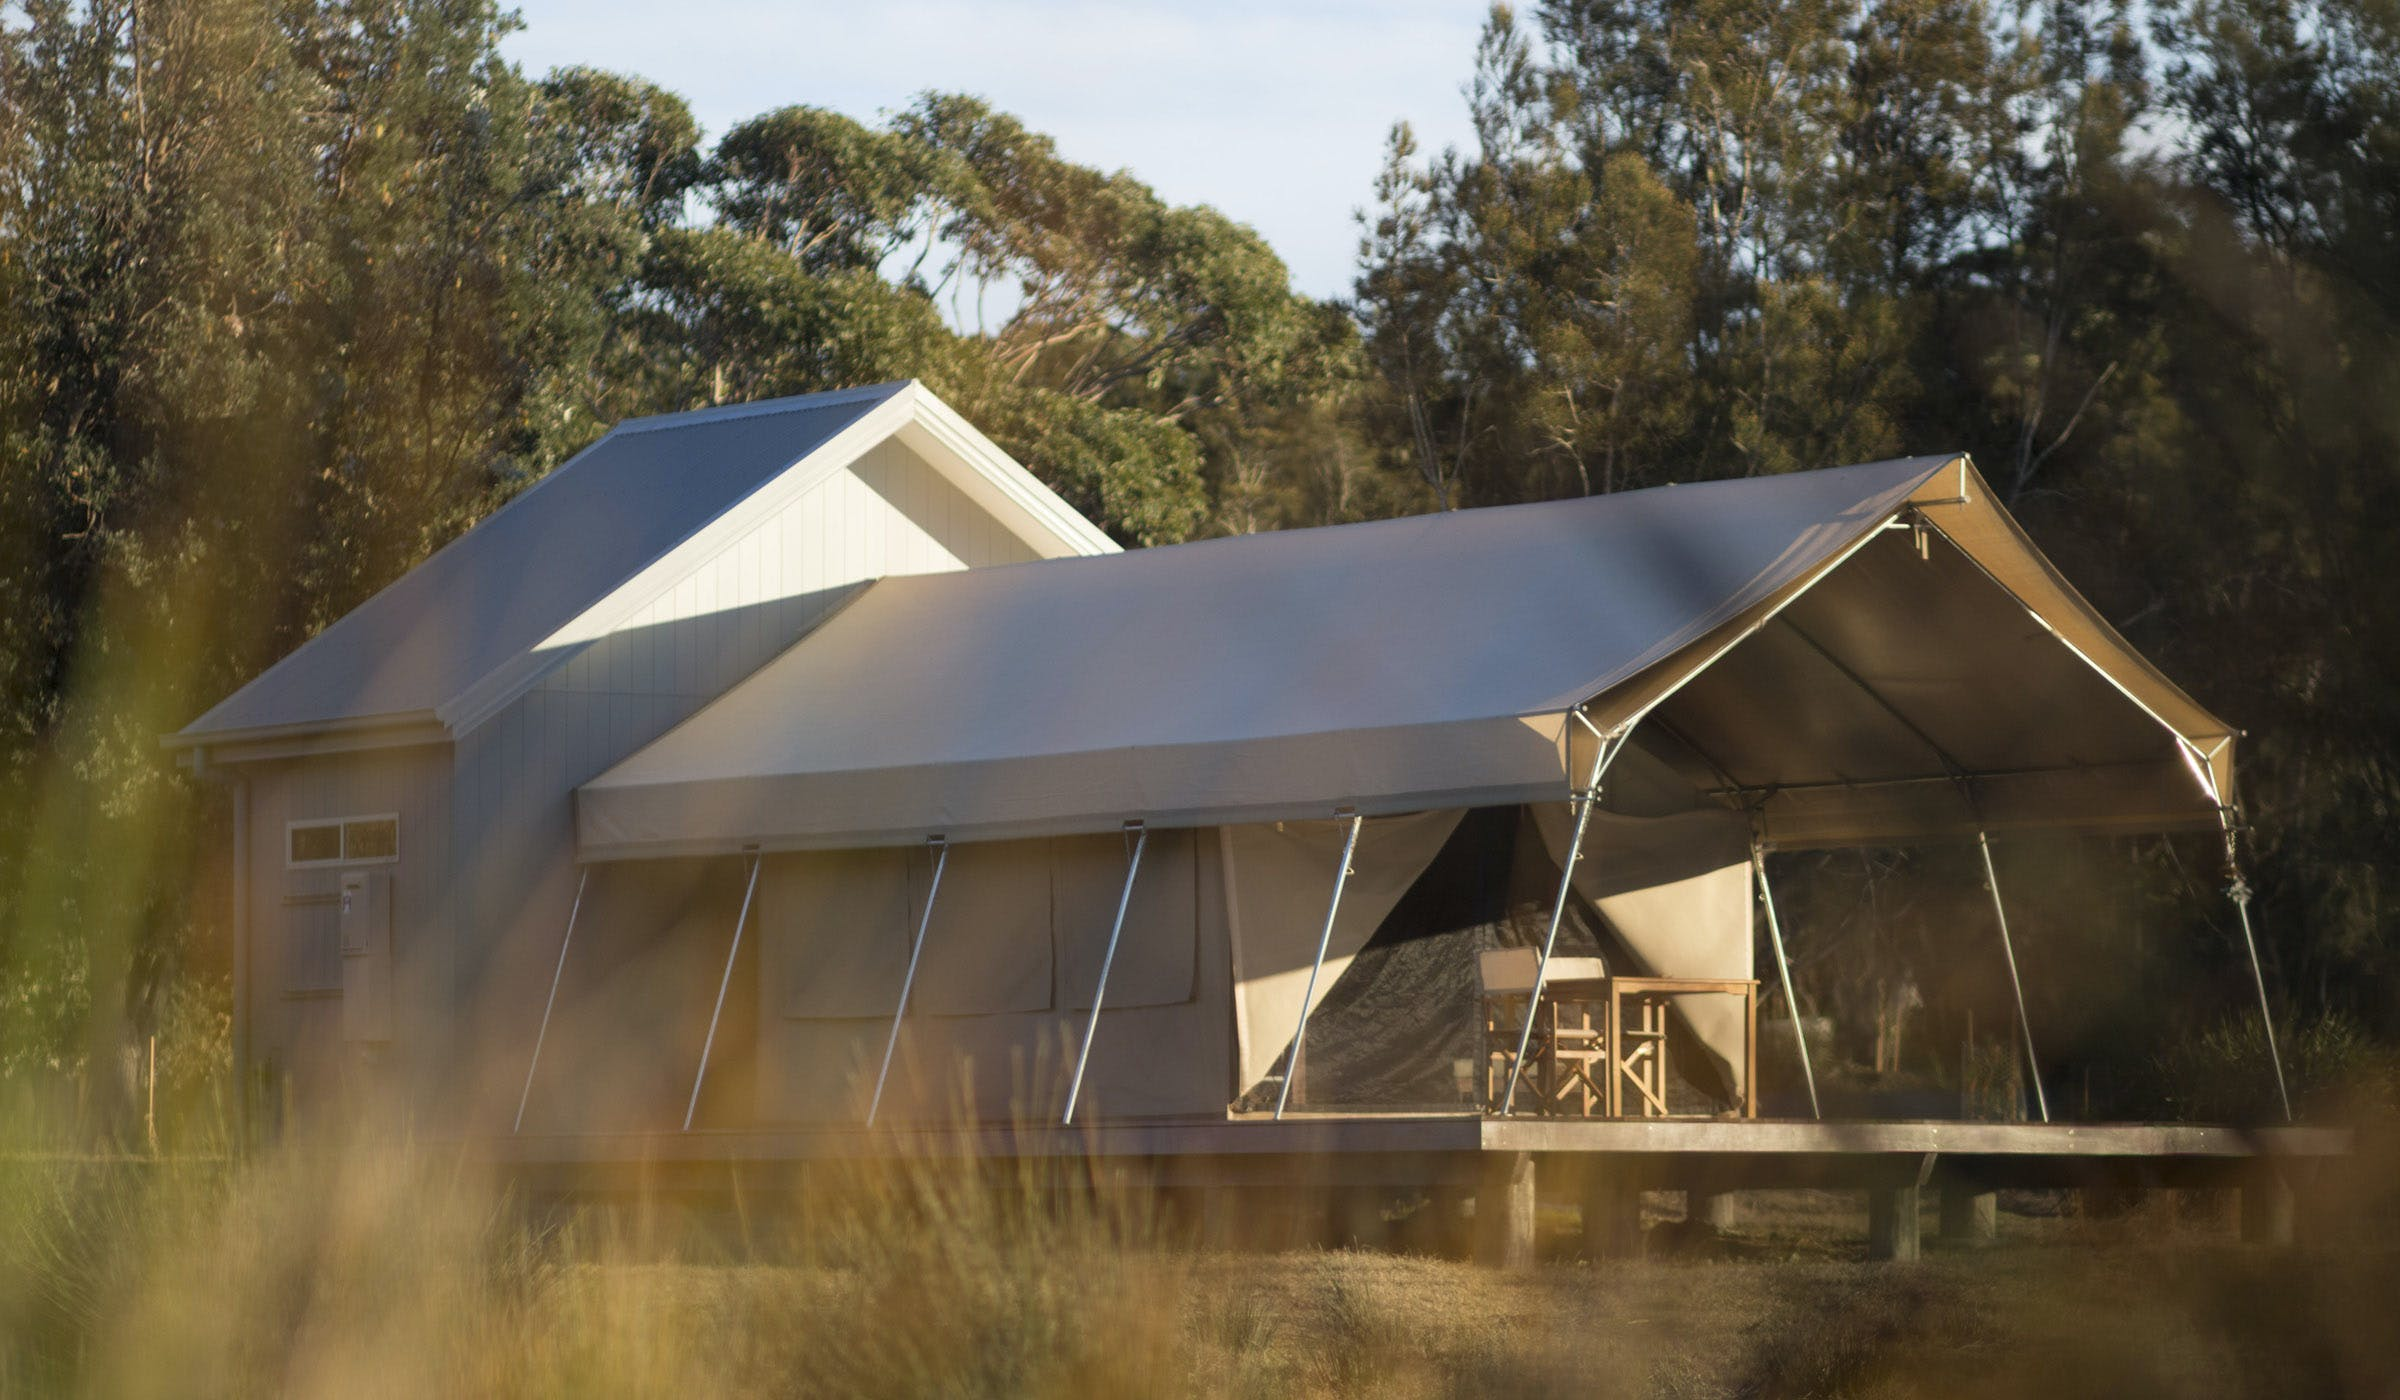 Bangalay Retreat glamping safari tent at Bawley Point